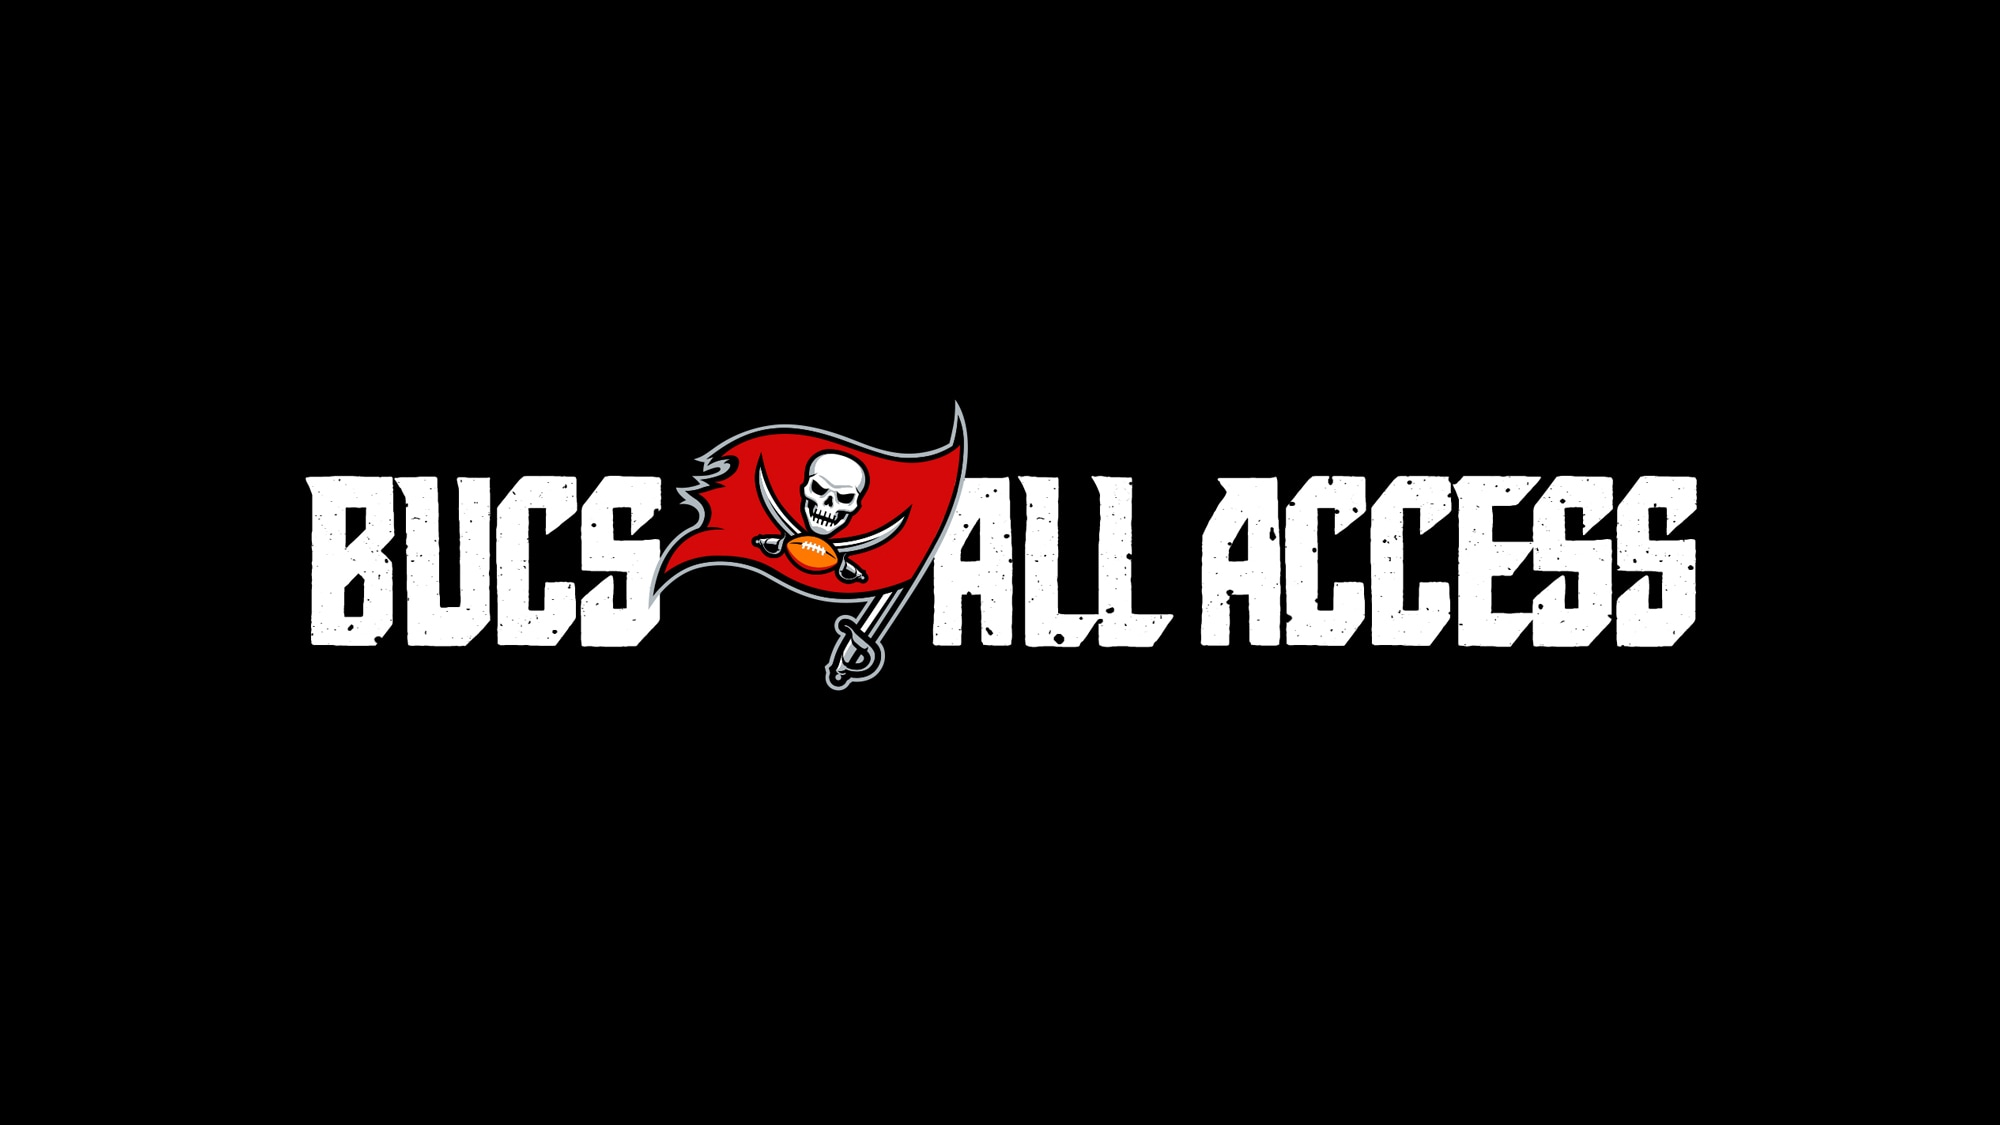 Bucs All Access